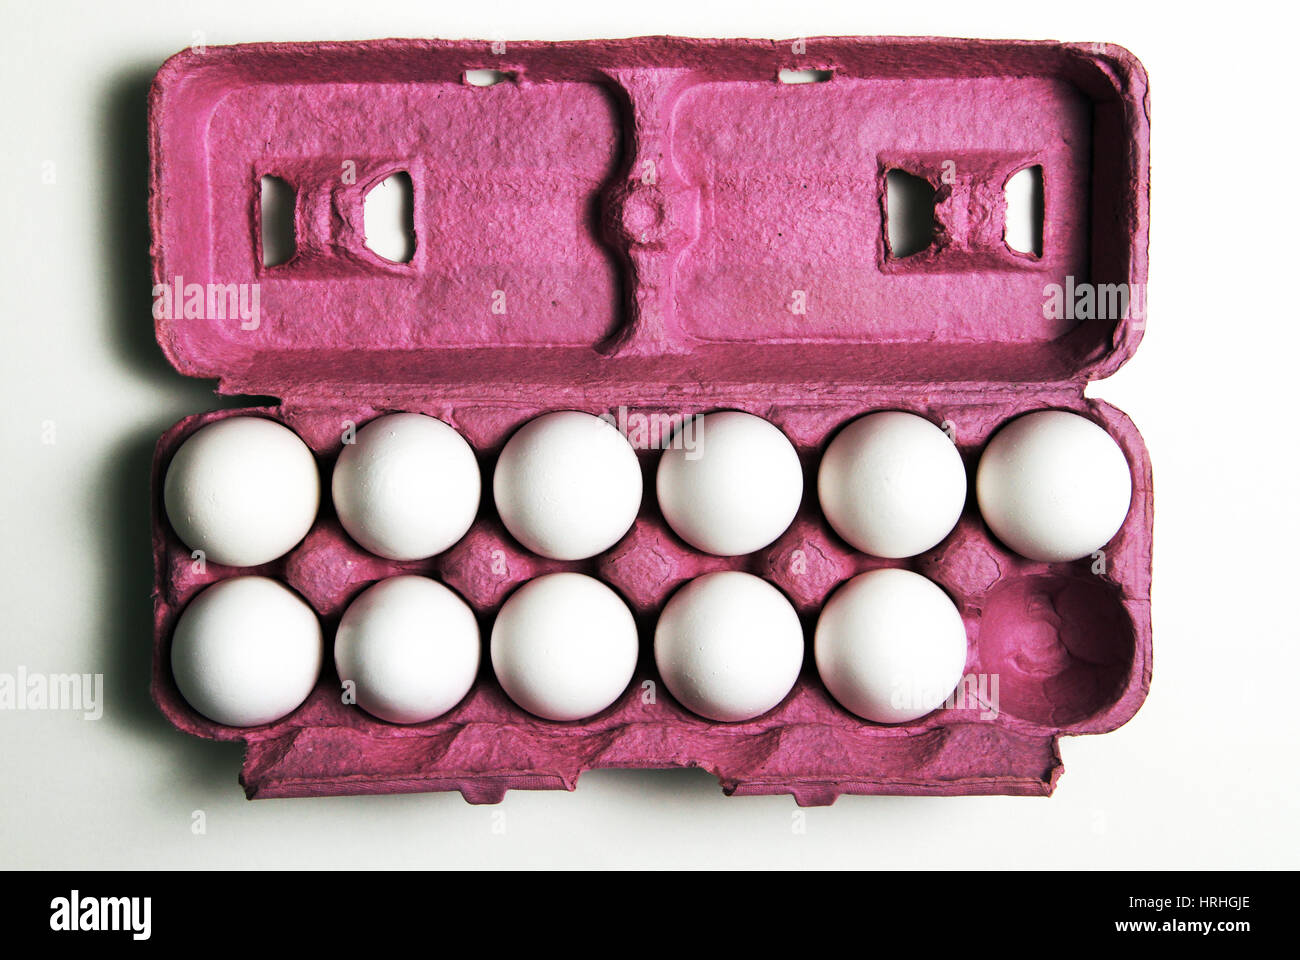 11 Eggs - Stock Image